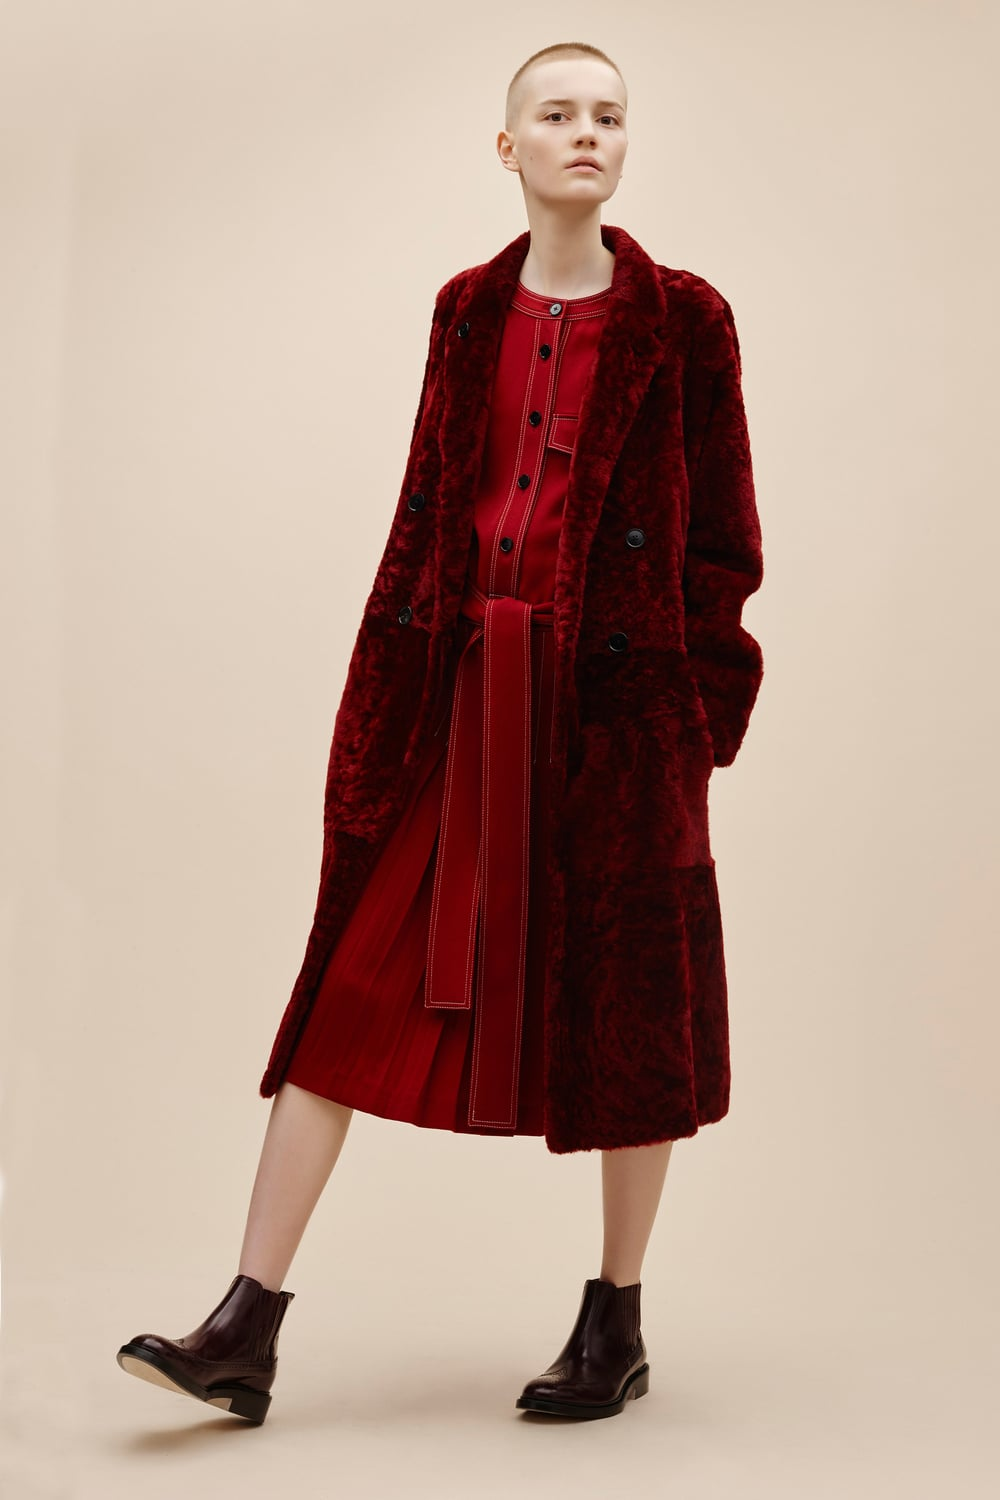 joseph-pre-fall-2016-lookbook-26.jpg